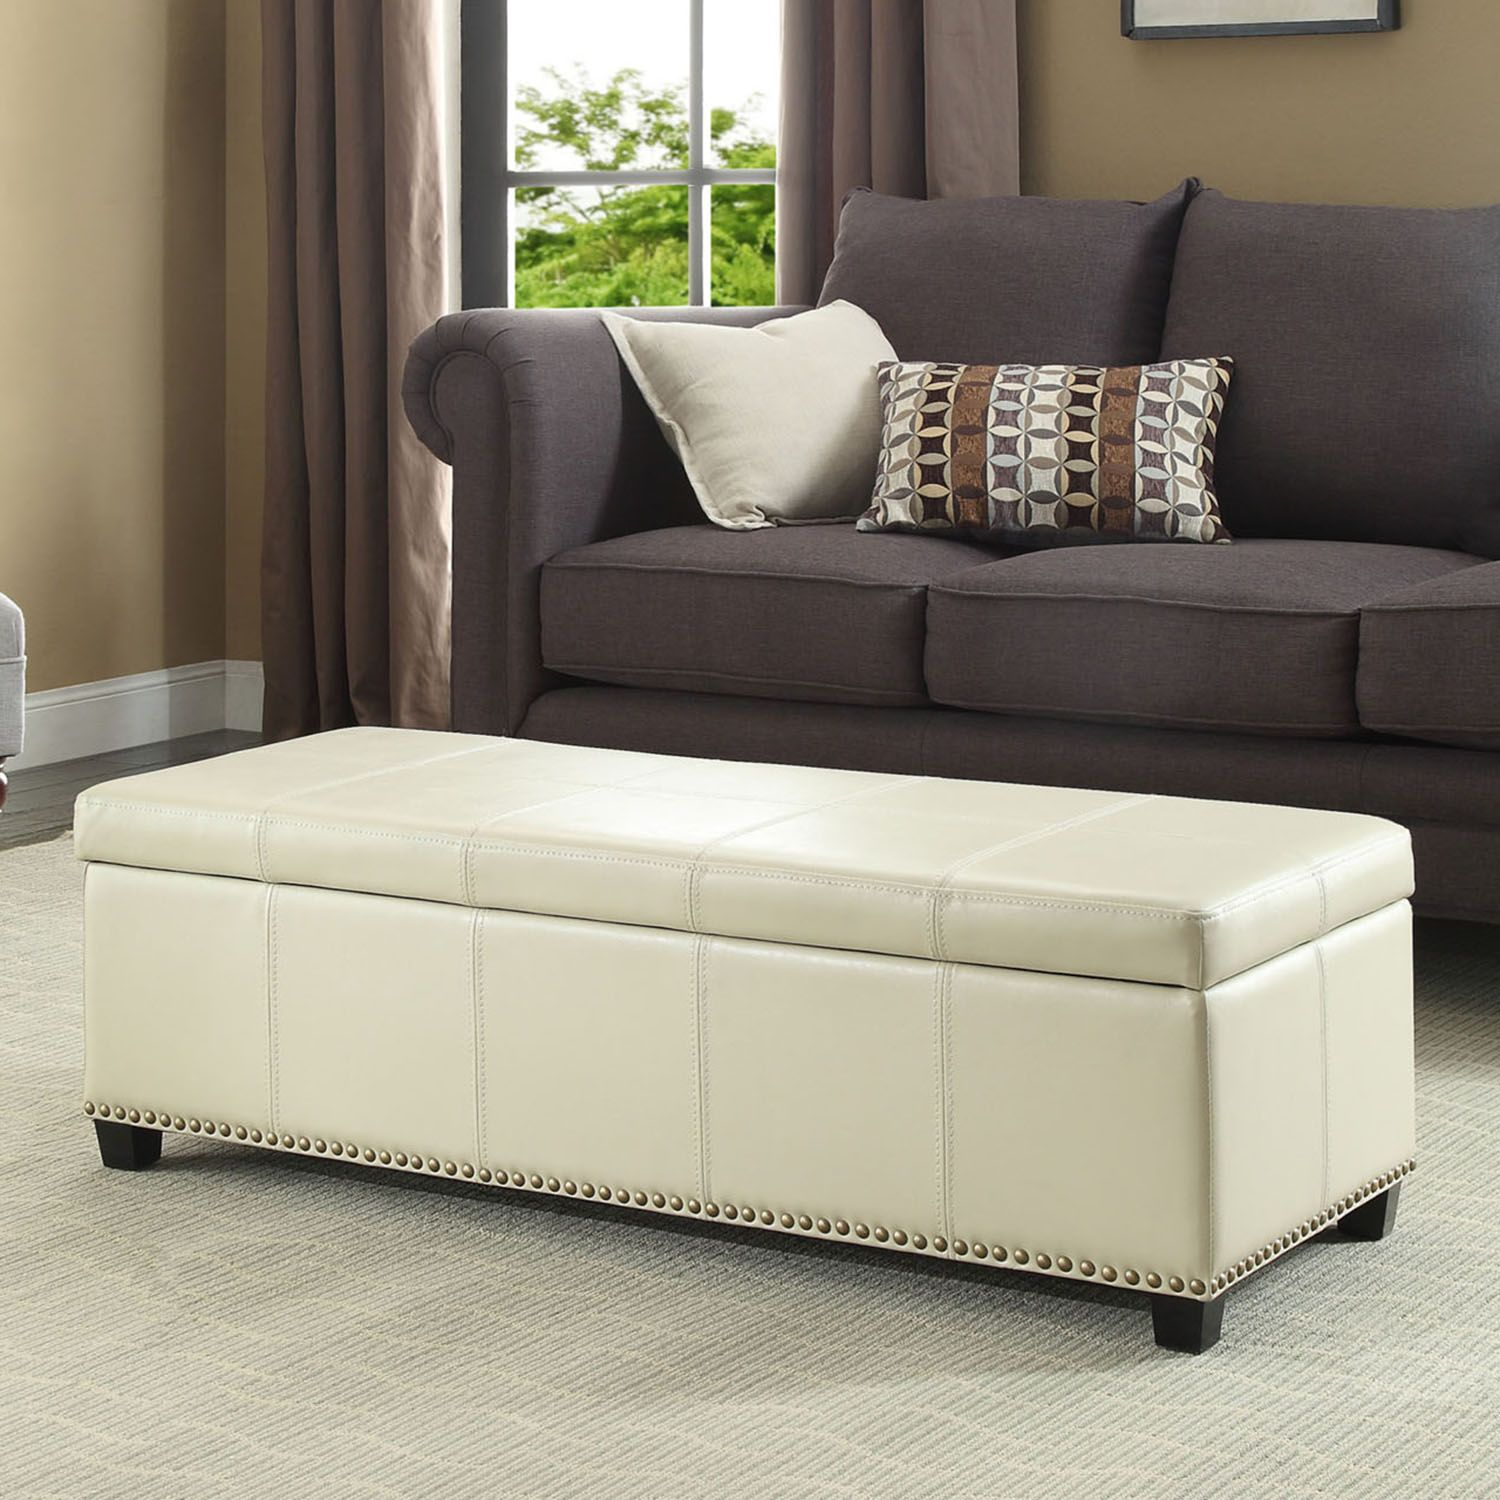 Home Kingsley Rectangular Storage Ottoman Bench